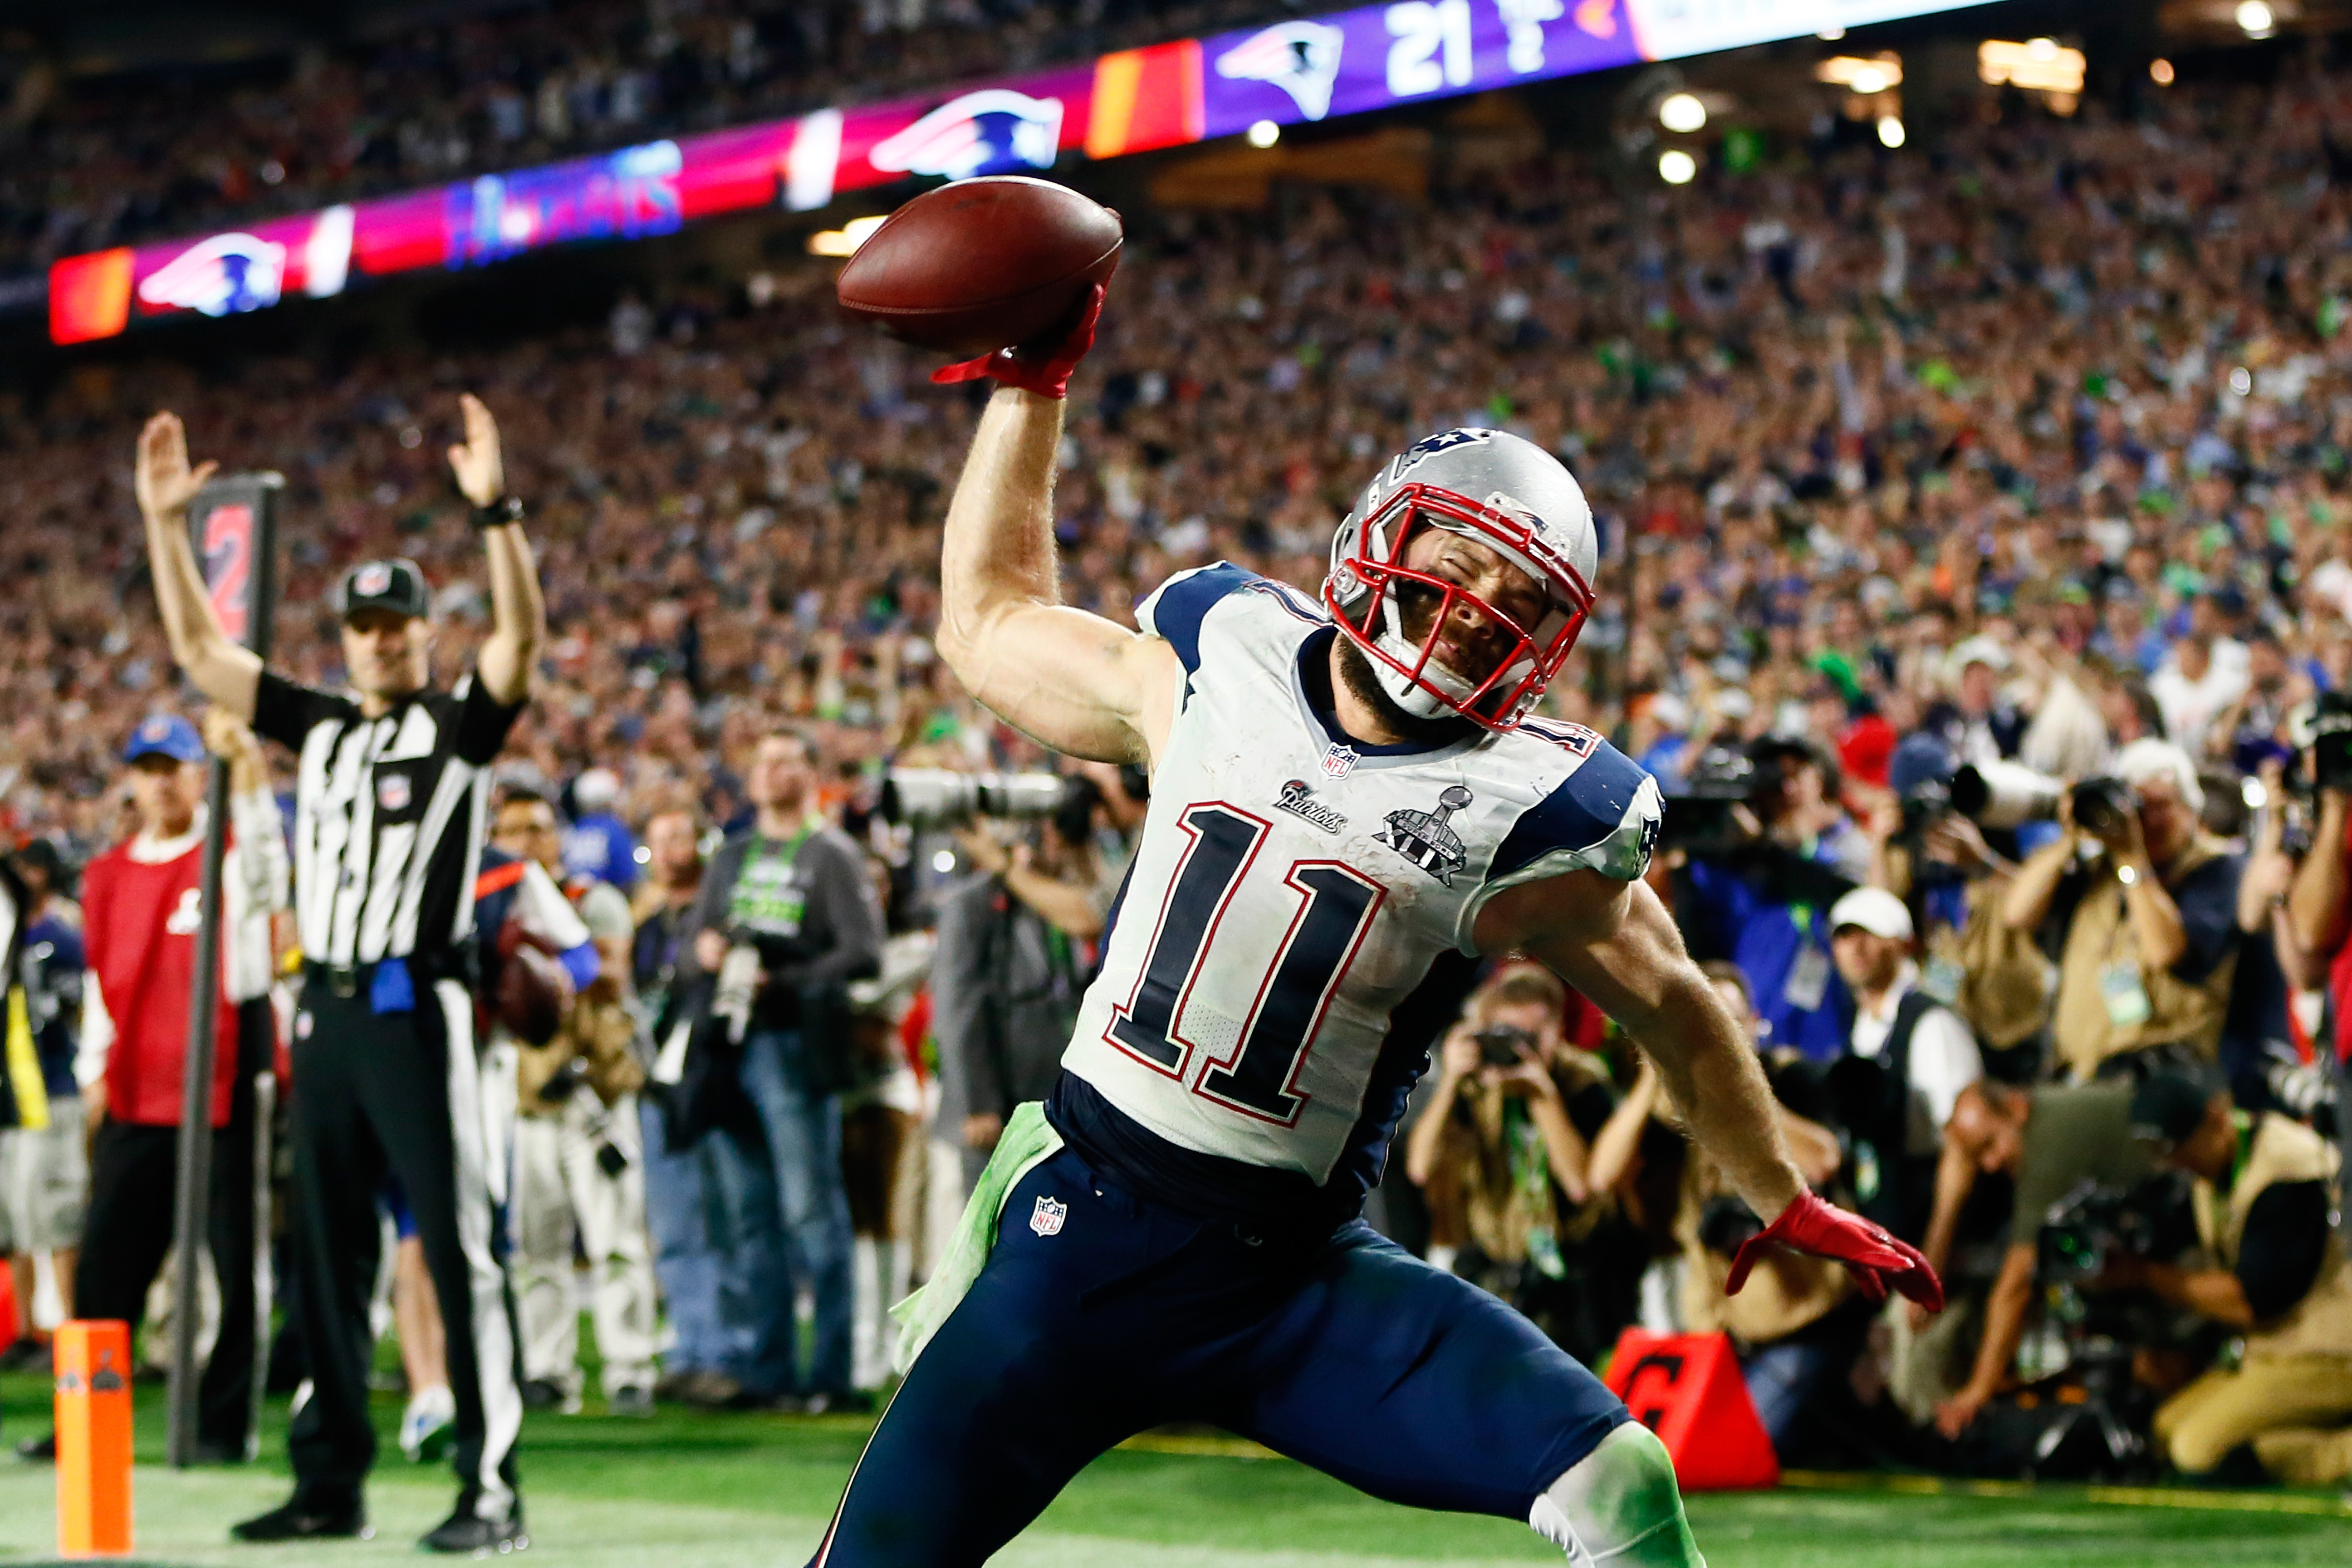 Julian Edelman #11 of the New England Patriots celebrates as he scores a 3 yard touchdown in the fourth quarter against Seattle Seahawks during Super Bowl XLIX at University of Phoenix Stadium on February 1, 2015 in Glendale, Arizona.